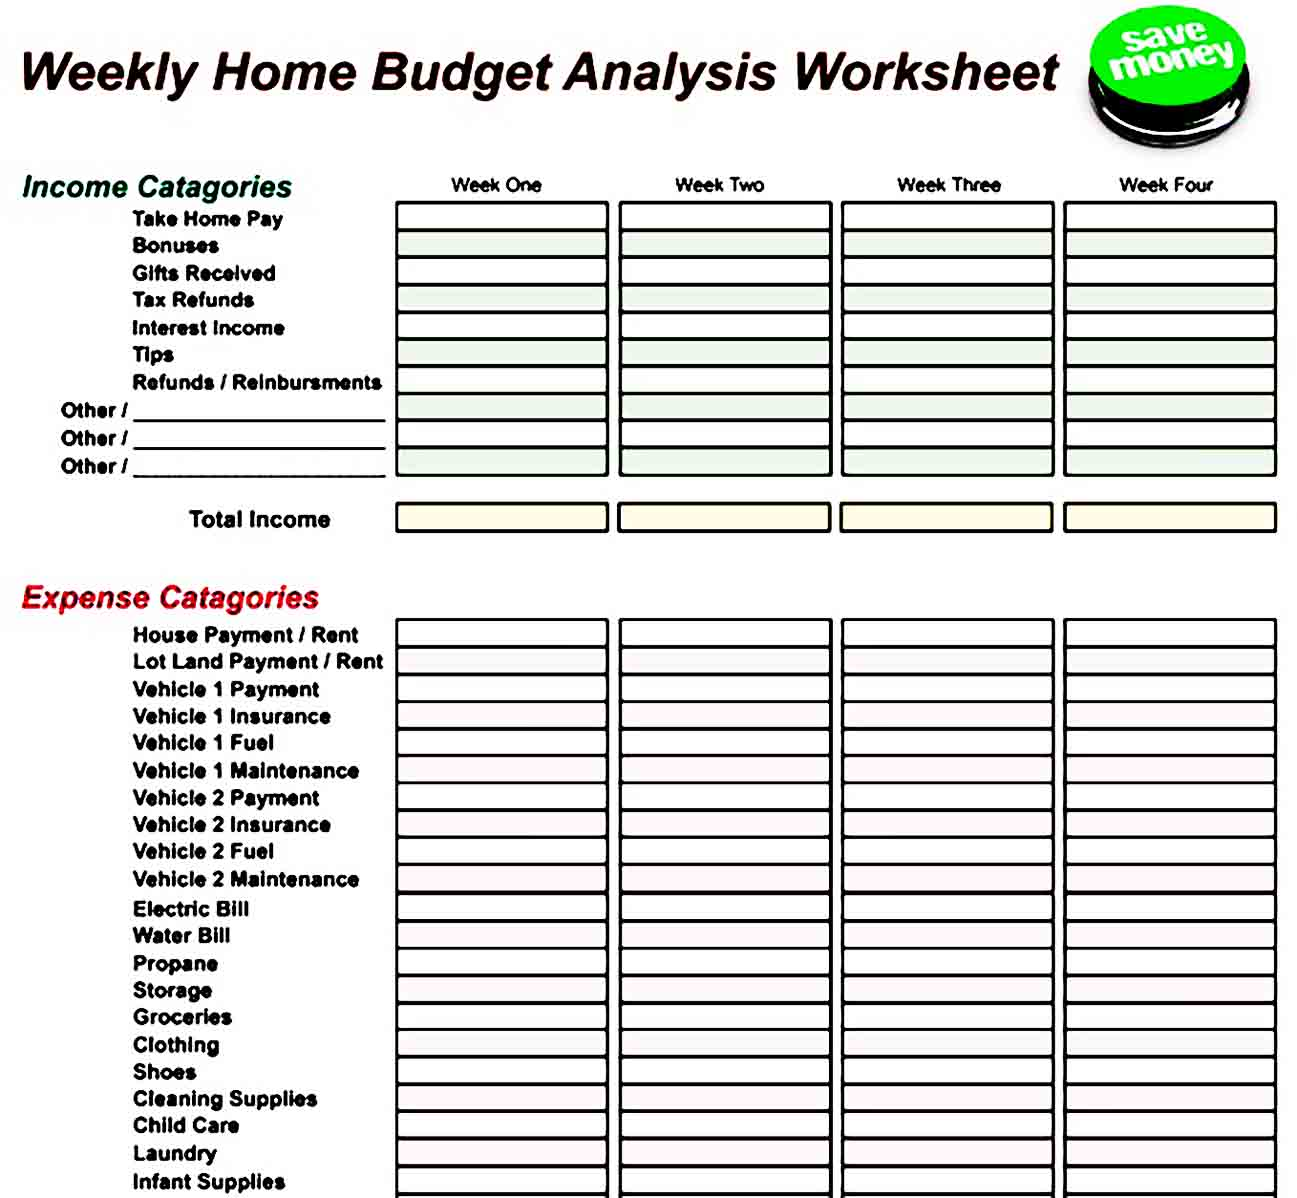 Weekly Home Budget